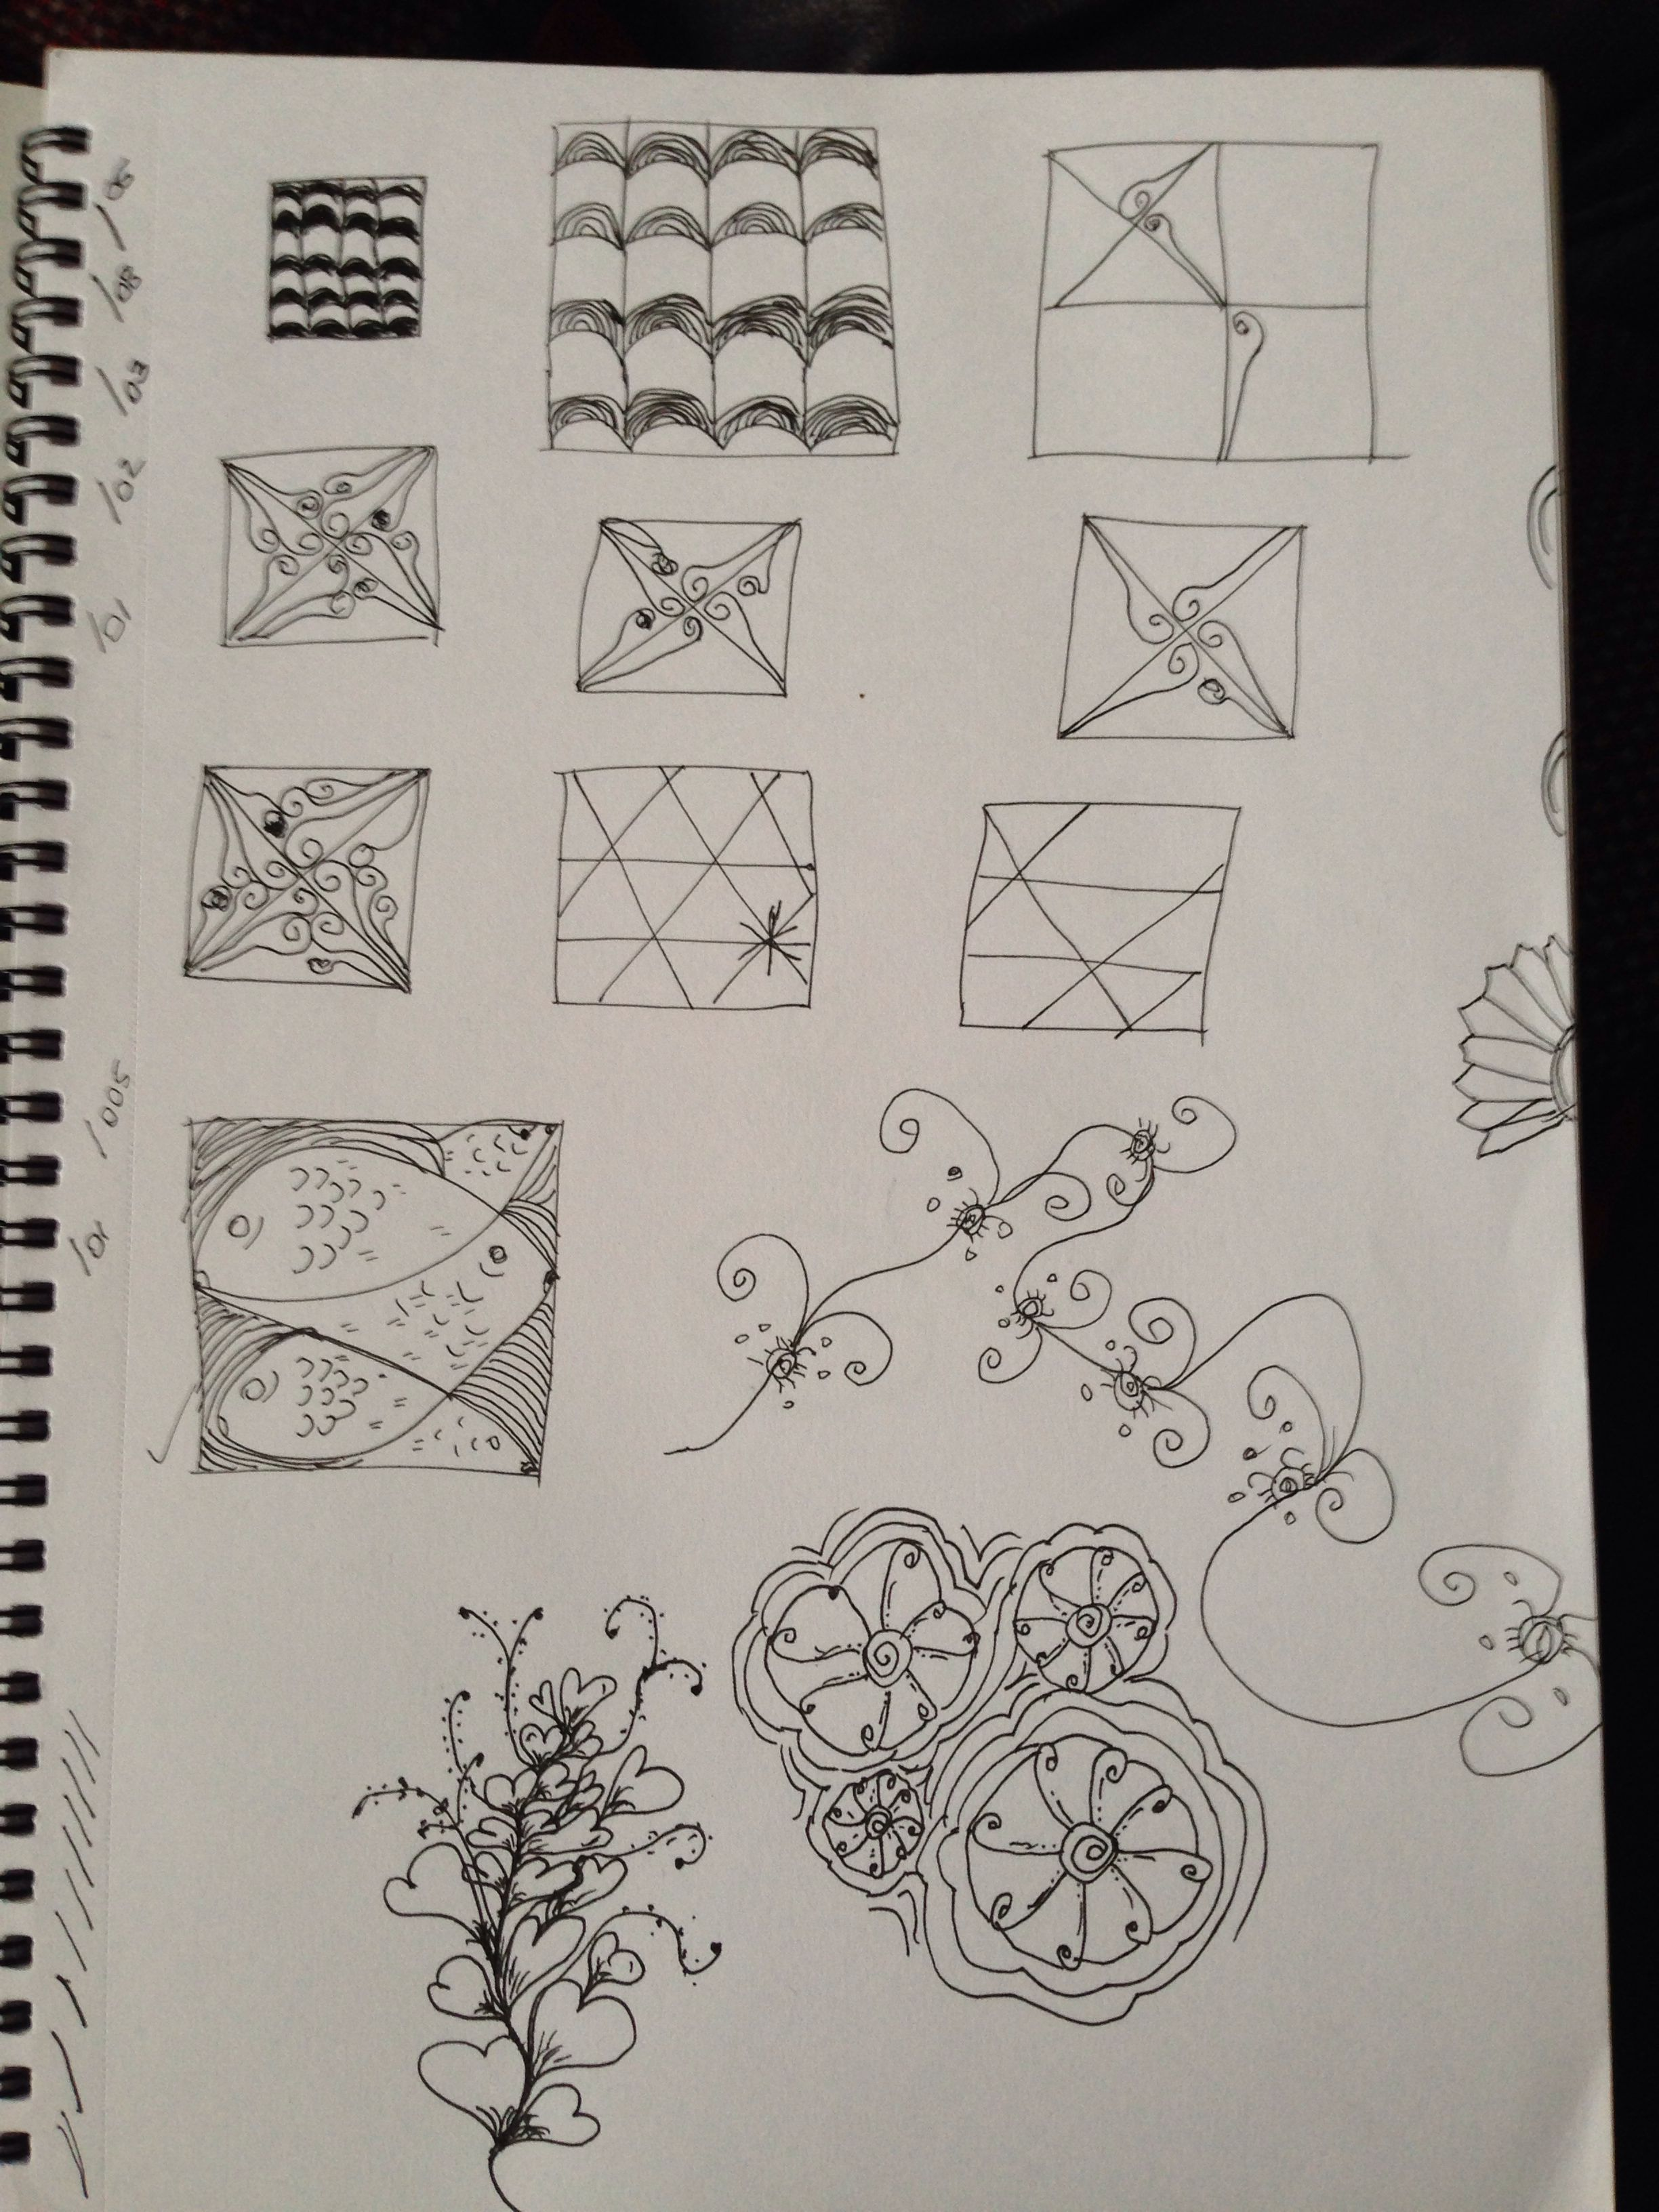 Practice tangles in note pad, some I found easier than others!